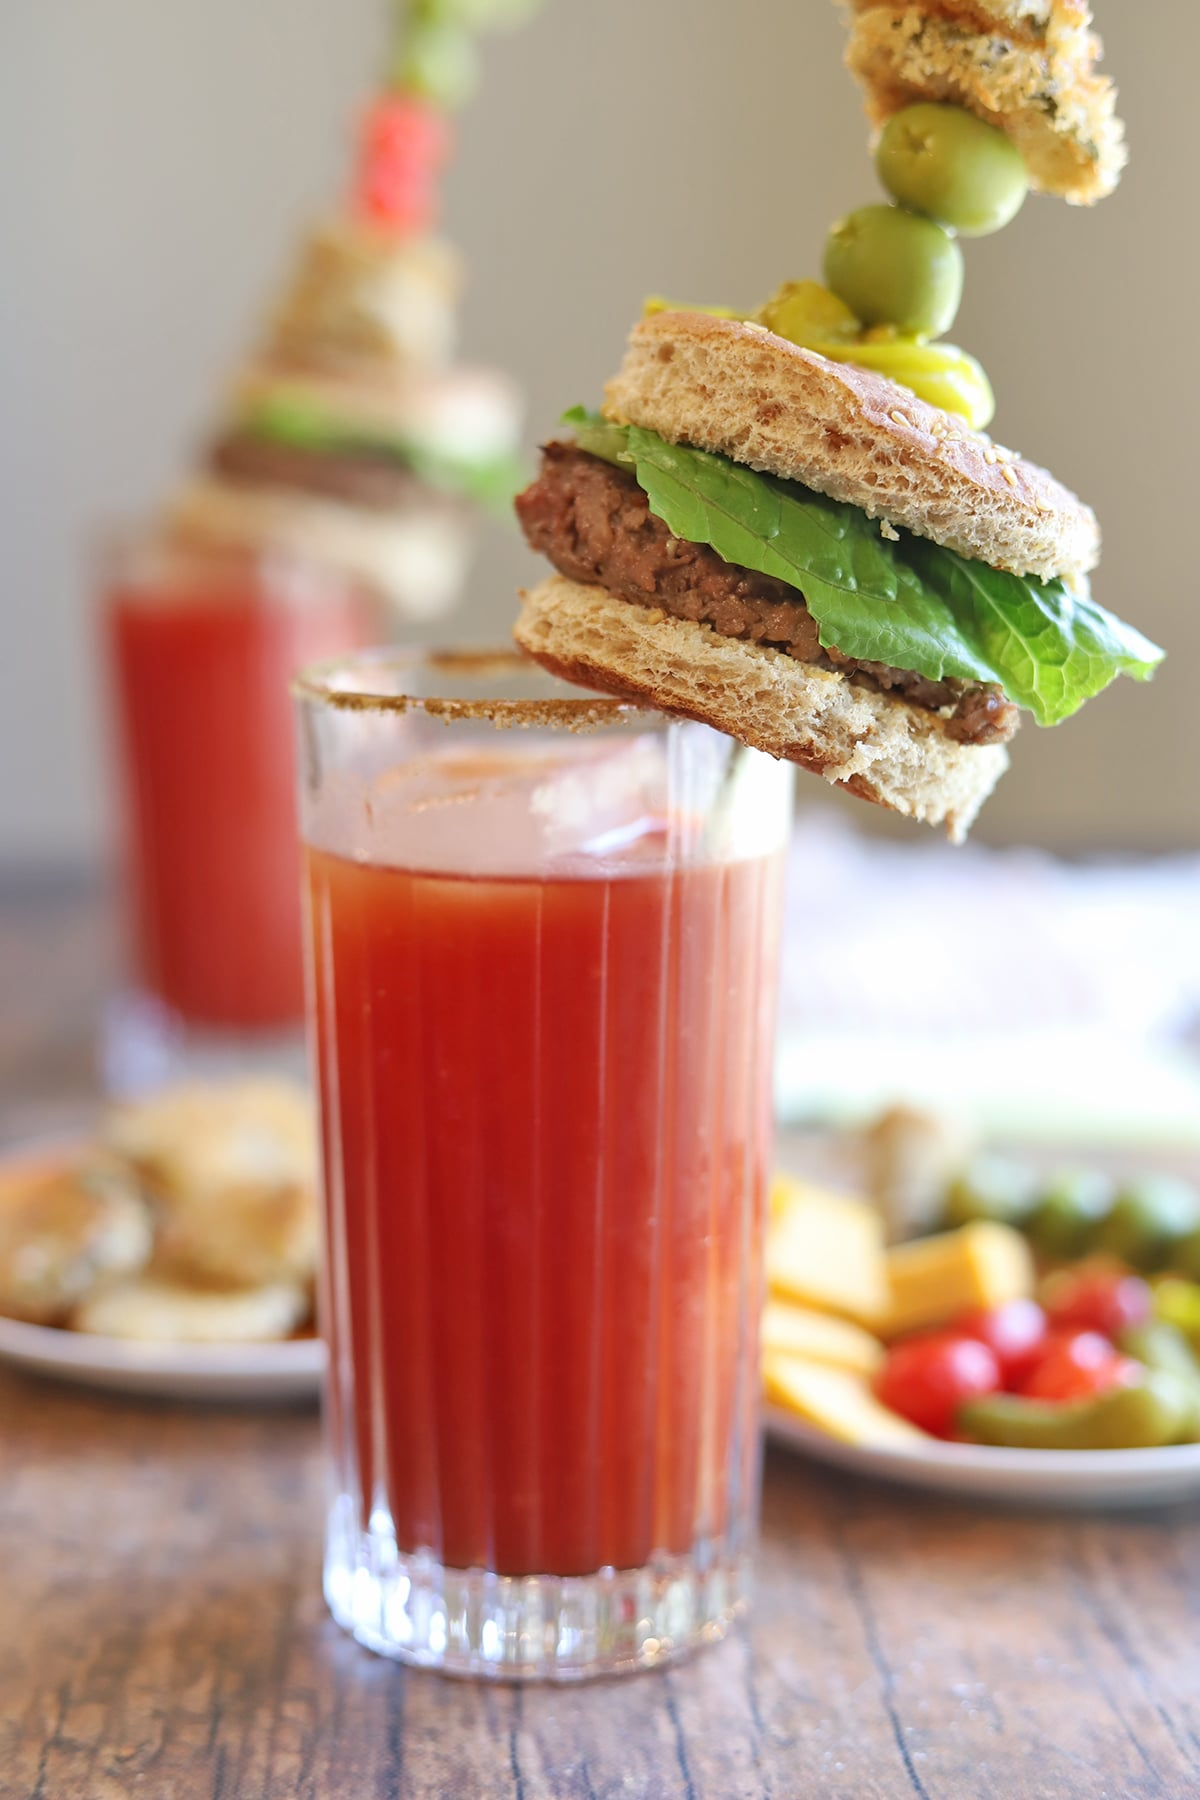 Veggie burger garnish on top of glass with Bloody Mary.